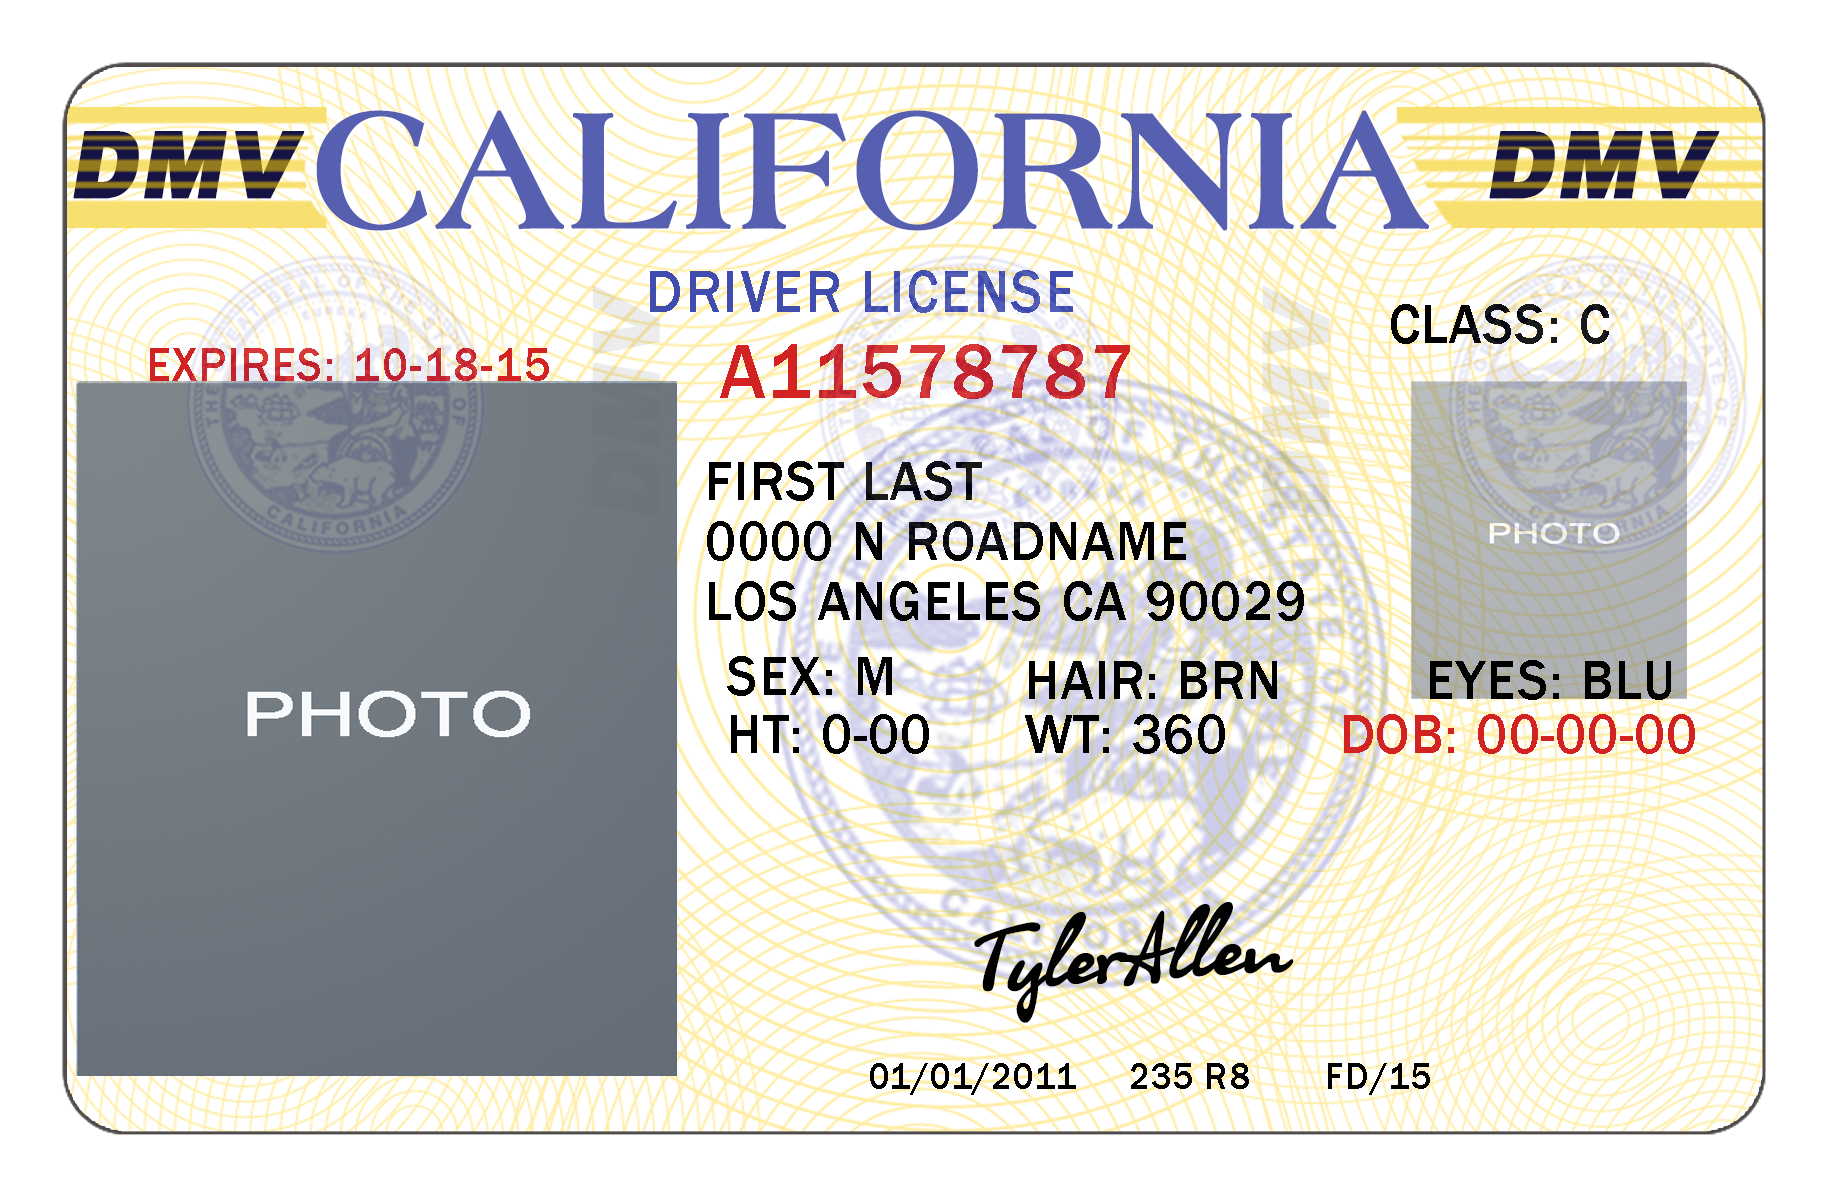 California Drivers License Template Buy Registered Real/fake - Free Printable Fake Drivers License